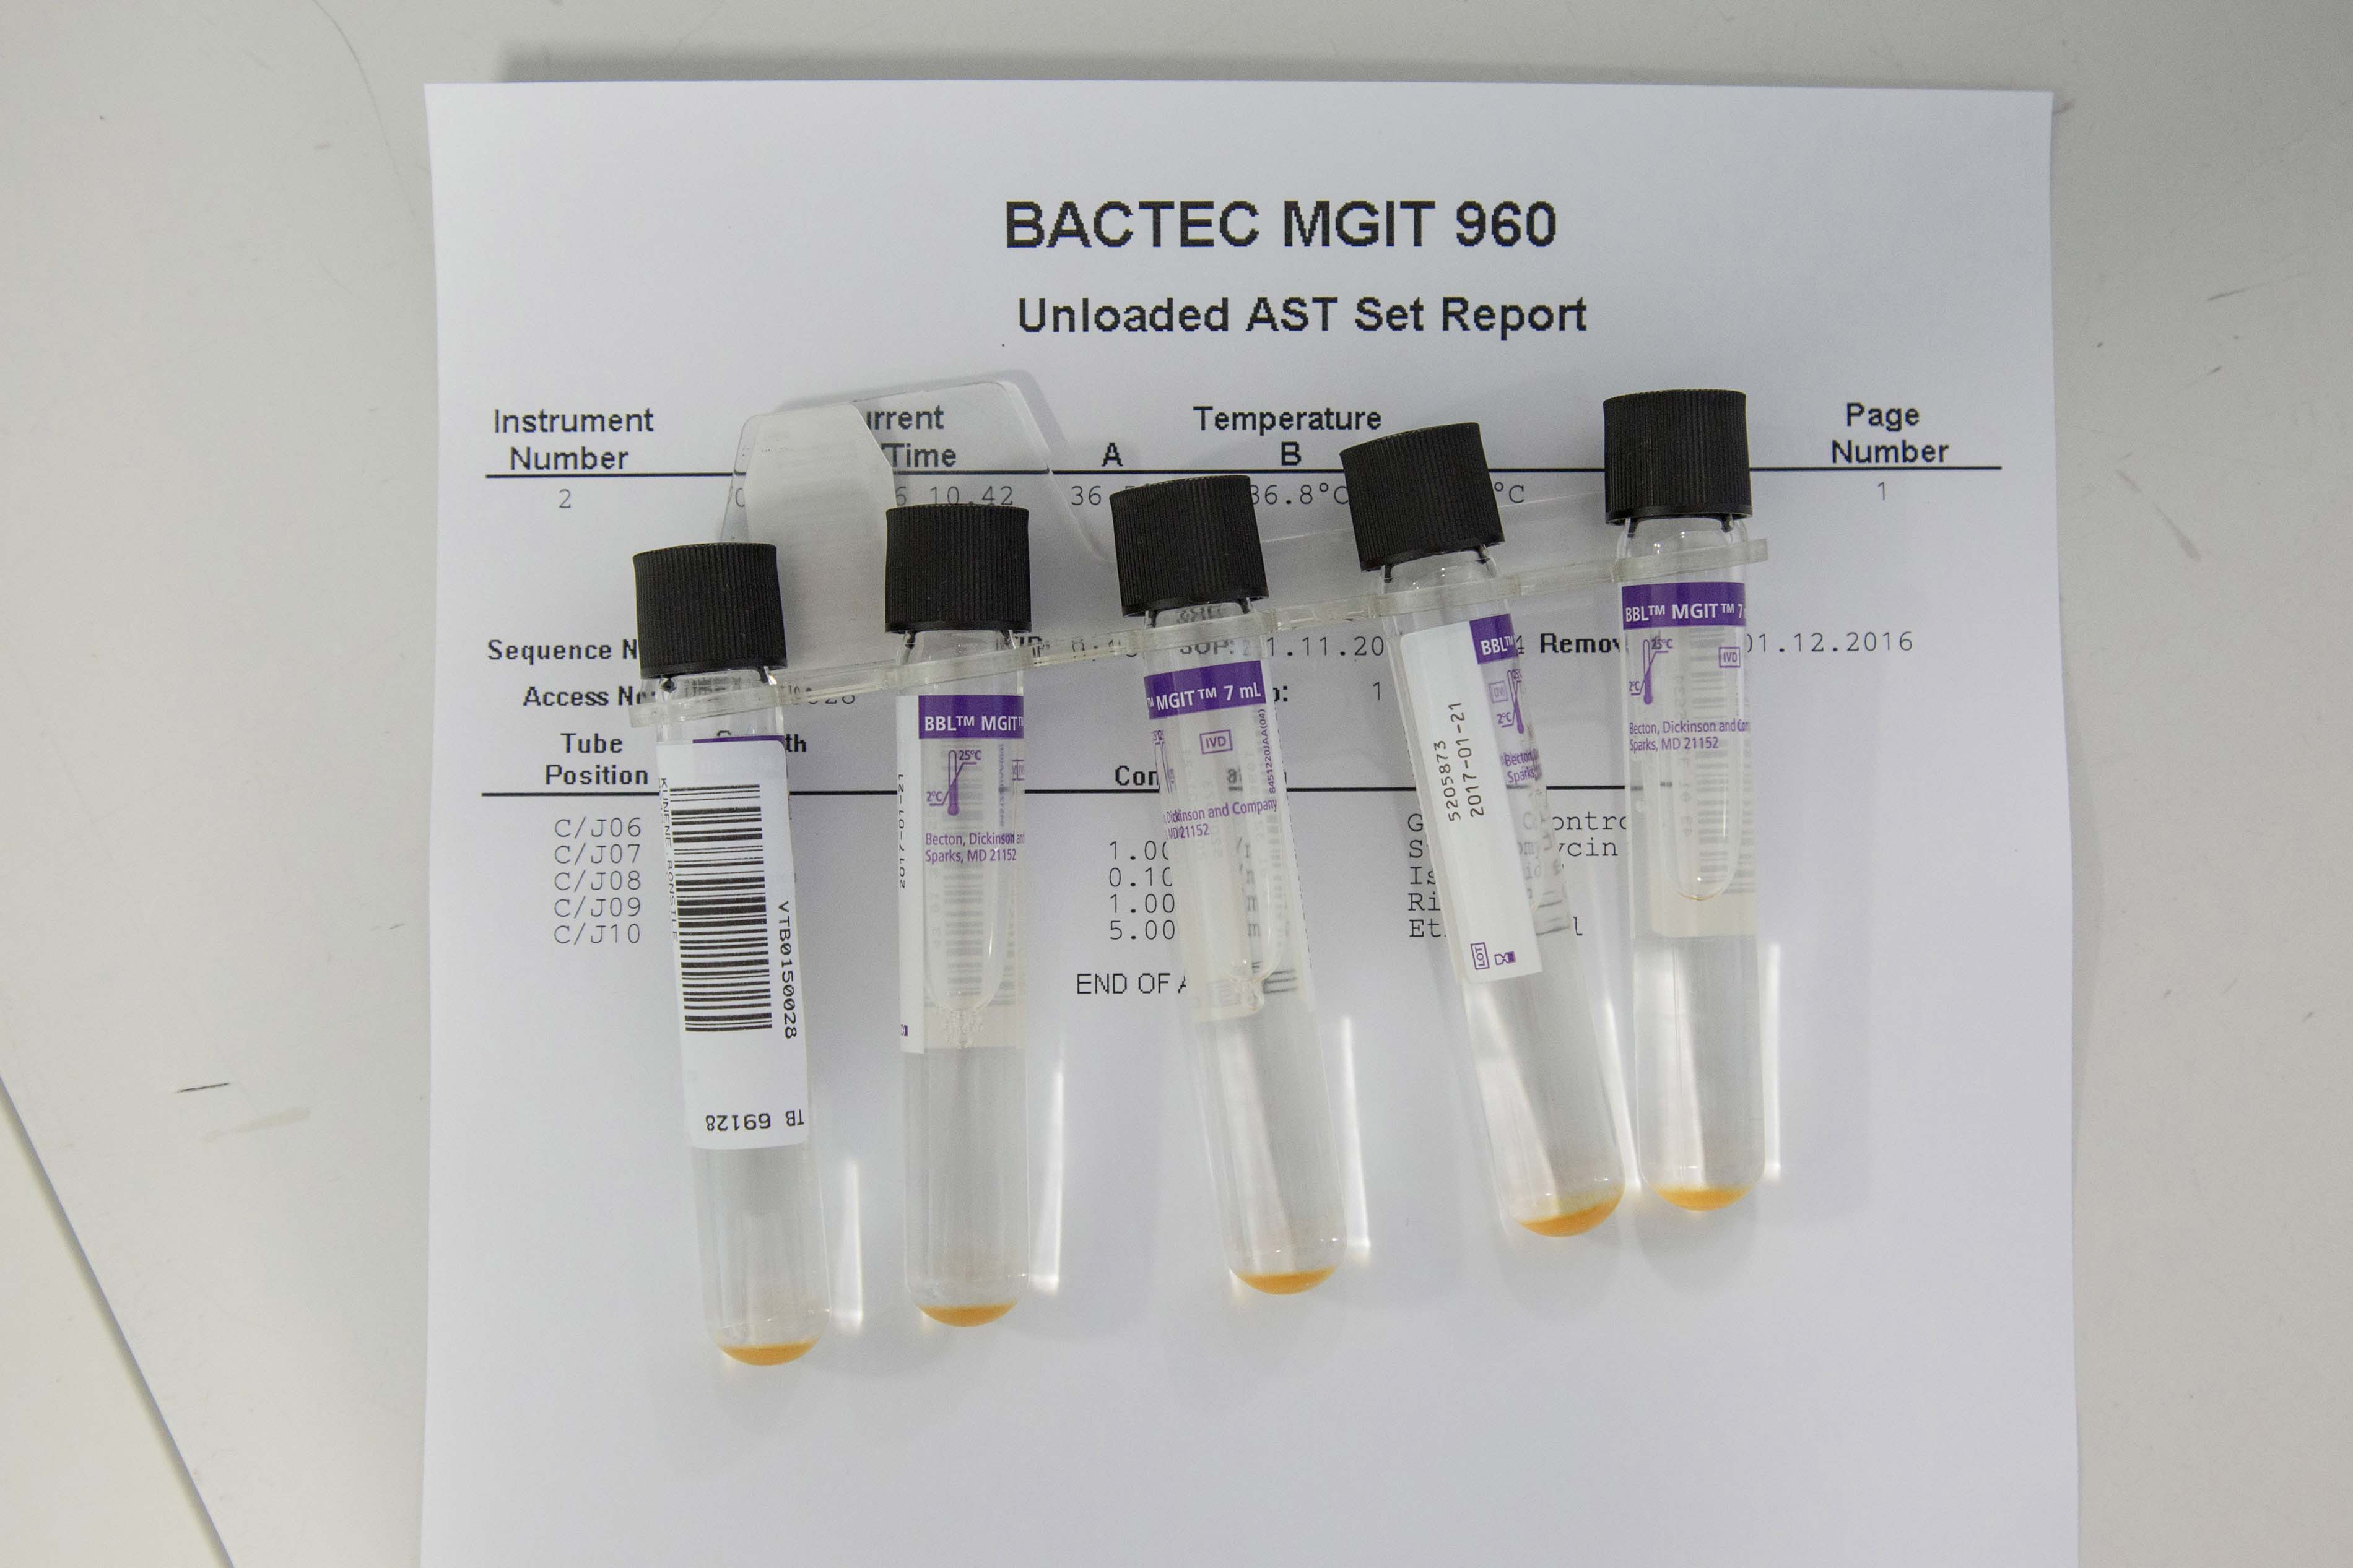 Bacteria culture tubes for BACTEC™ MGIT™ 960 Mycobacterial detection system in the National TB Reference Laboratory. This device helps growing and detecting TB bacteria and determining drug resistances. Government Hospital, Mbabane, Swaziland. Photograph by Alexis Huguet